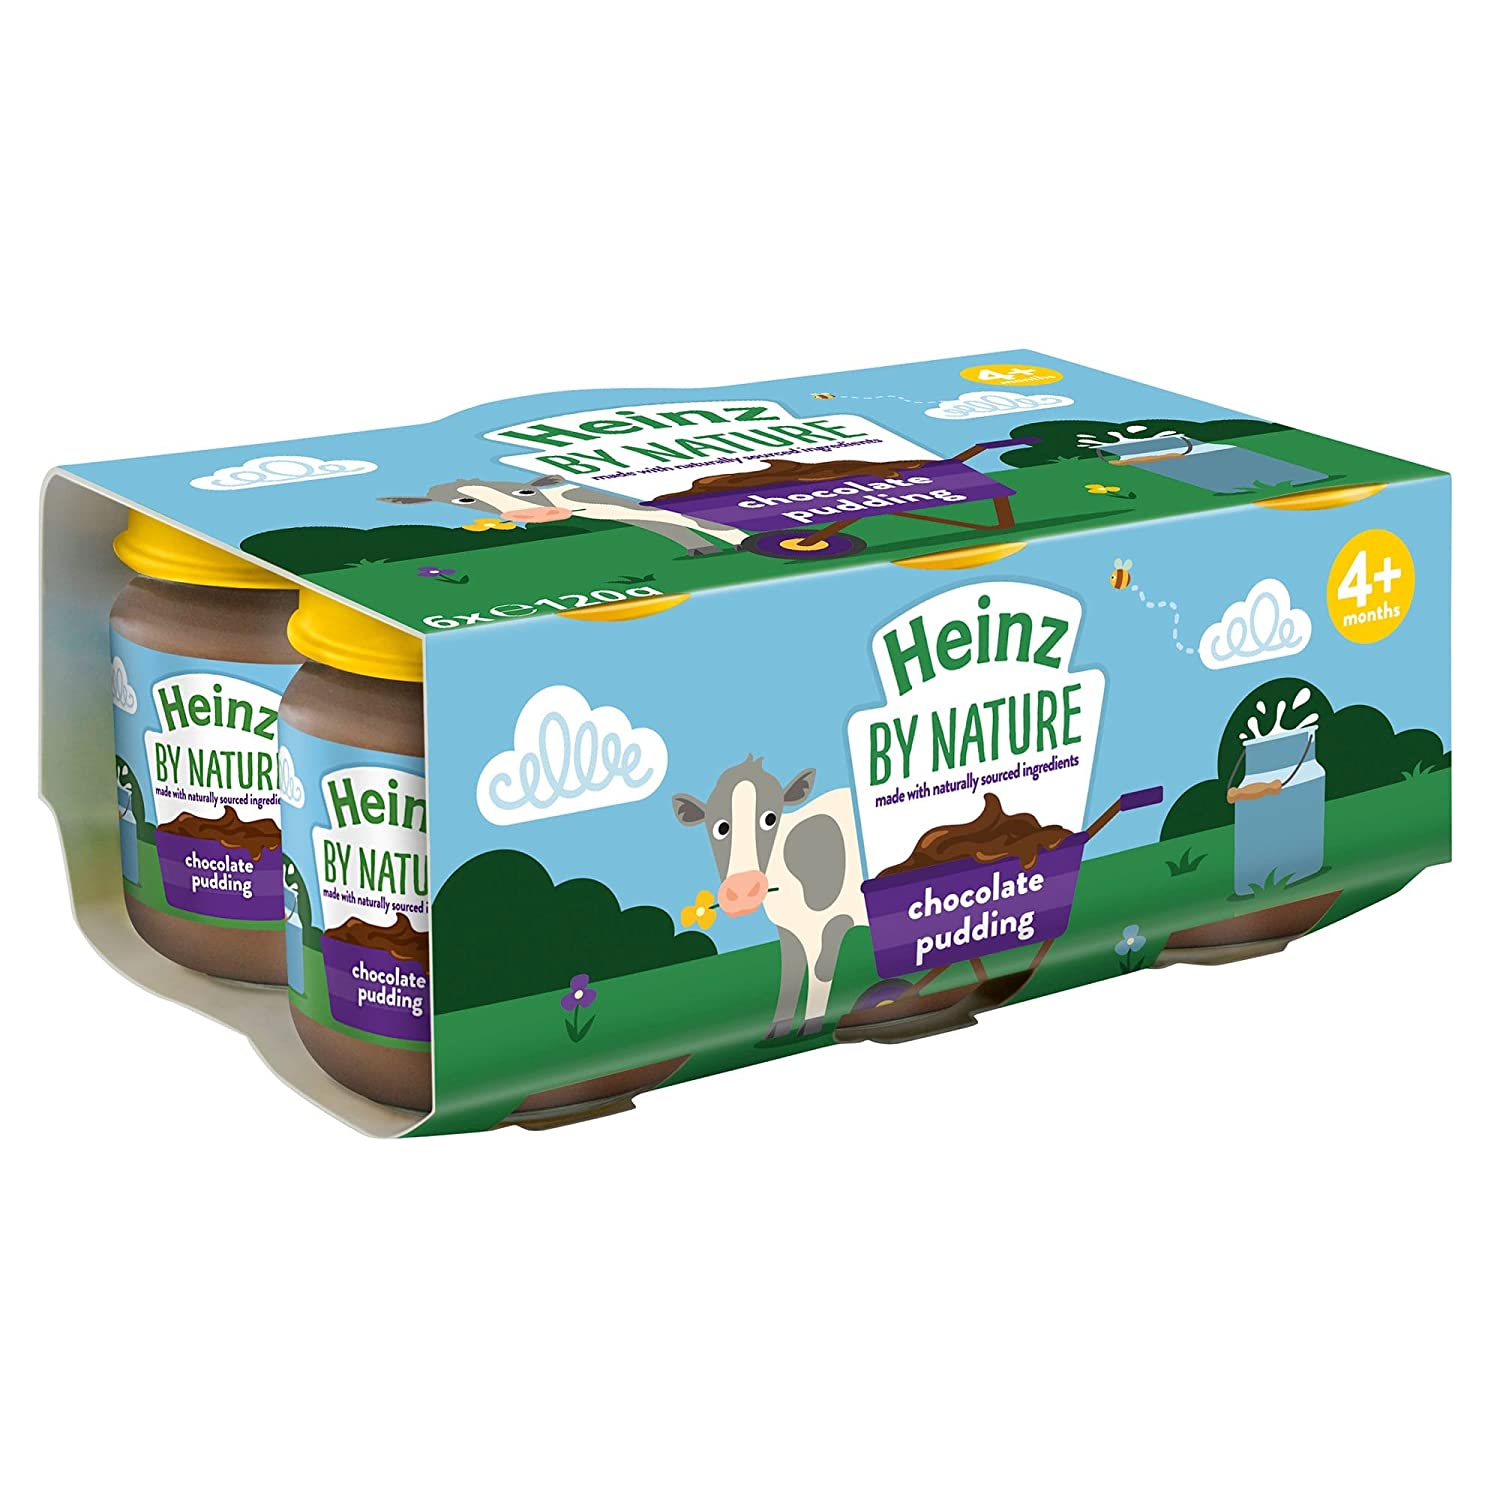 Heinz by Nature Chocolate Pudding - 24x120g